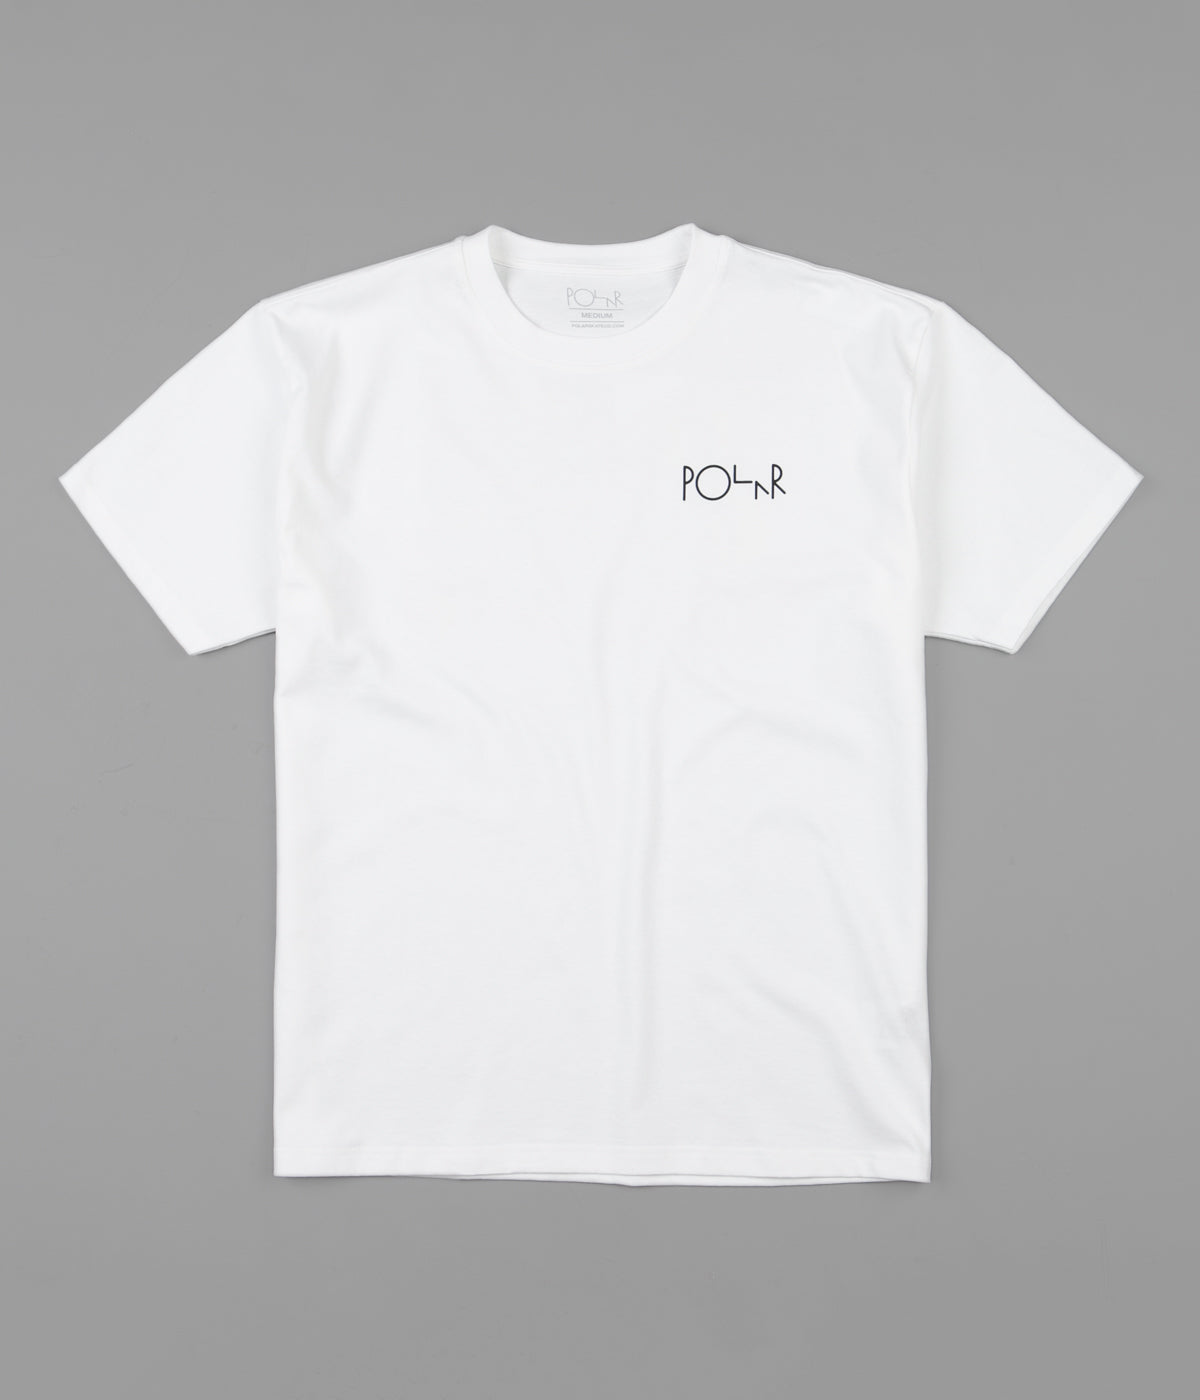 Polar The Artist T-Shirt - White